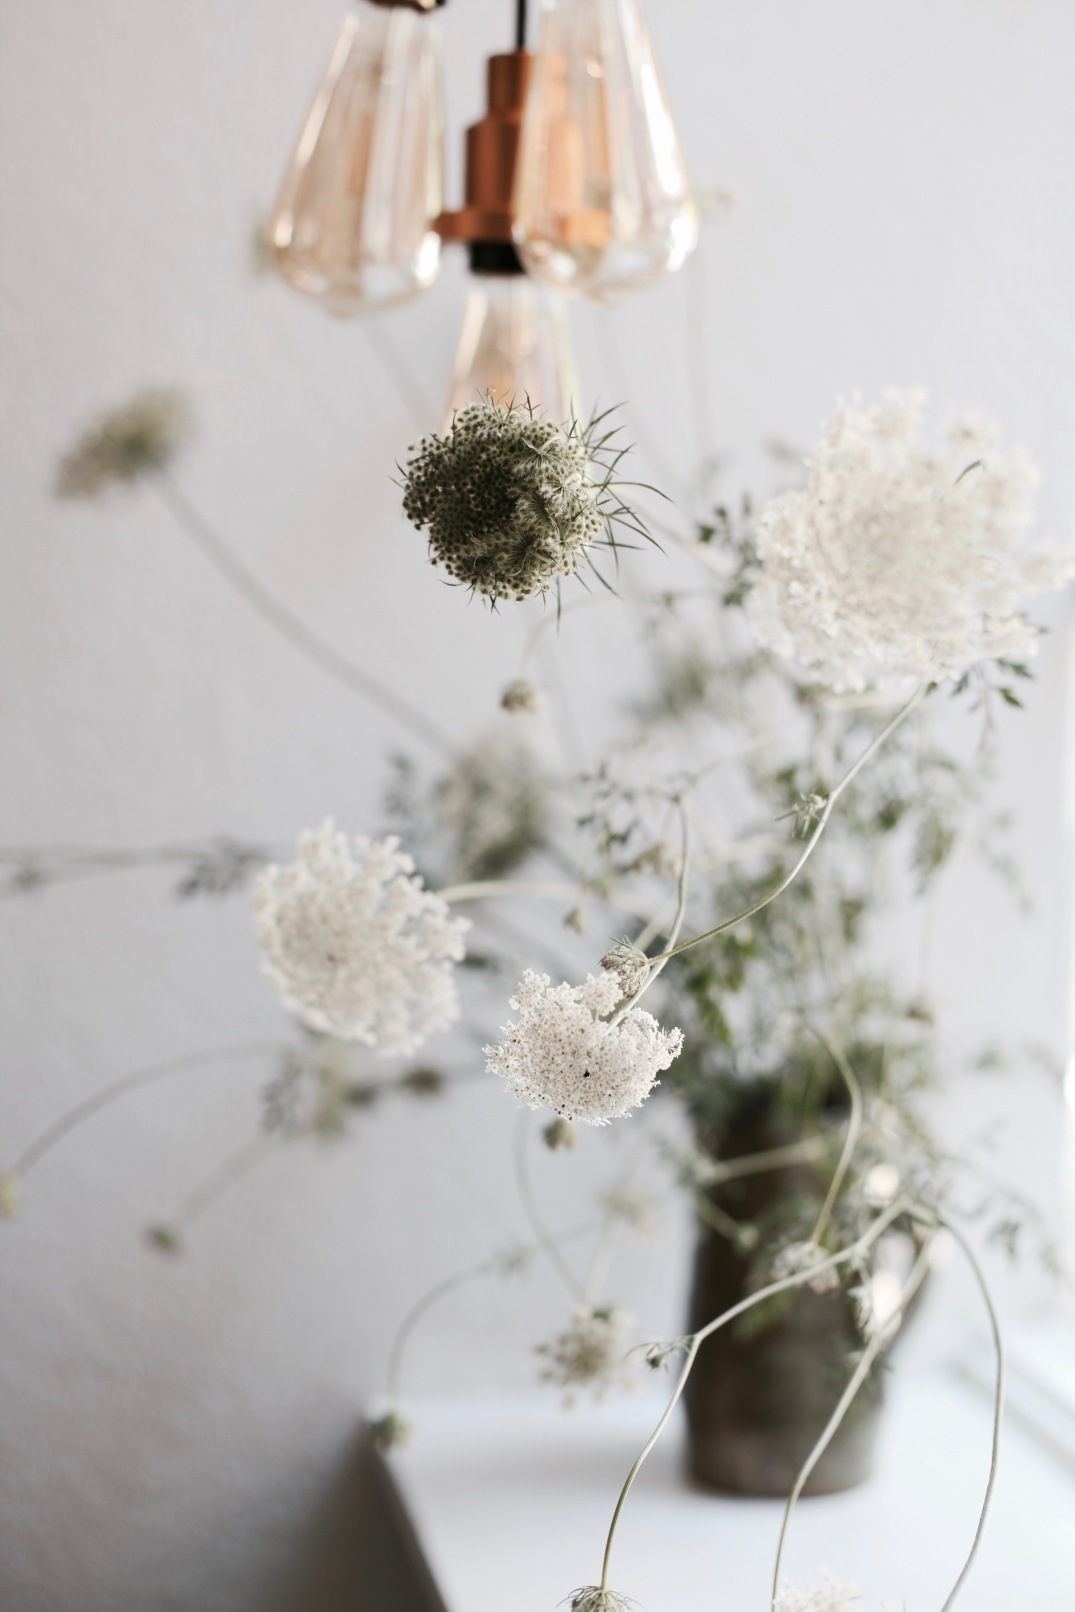 Queen Anne's Lace and Osram bulbs in front of window